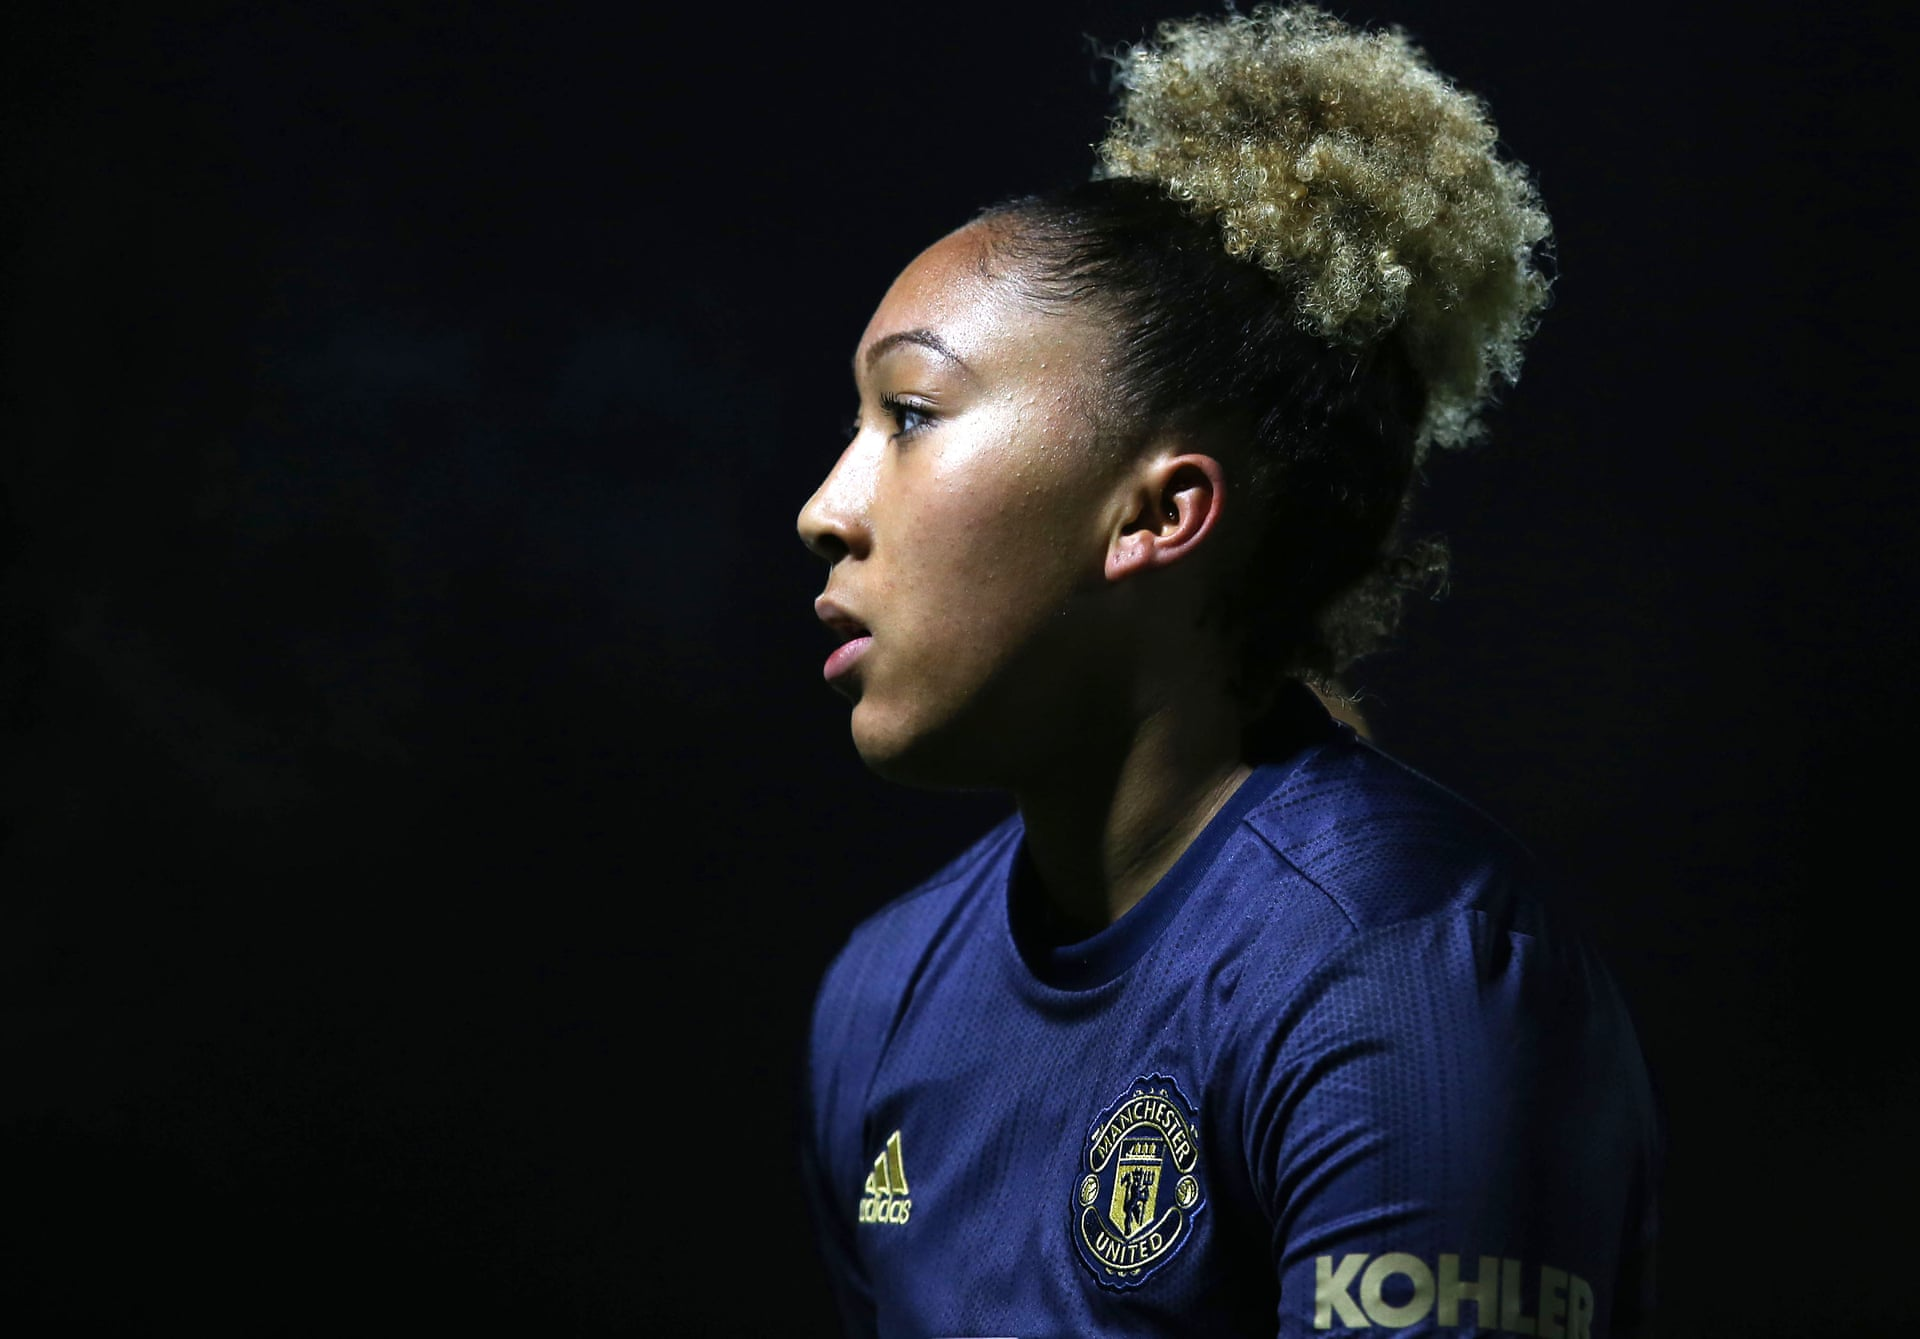 Manchester United's Lauren James impressed against Arsenal. Img: Matthew Peters